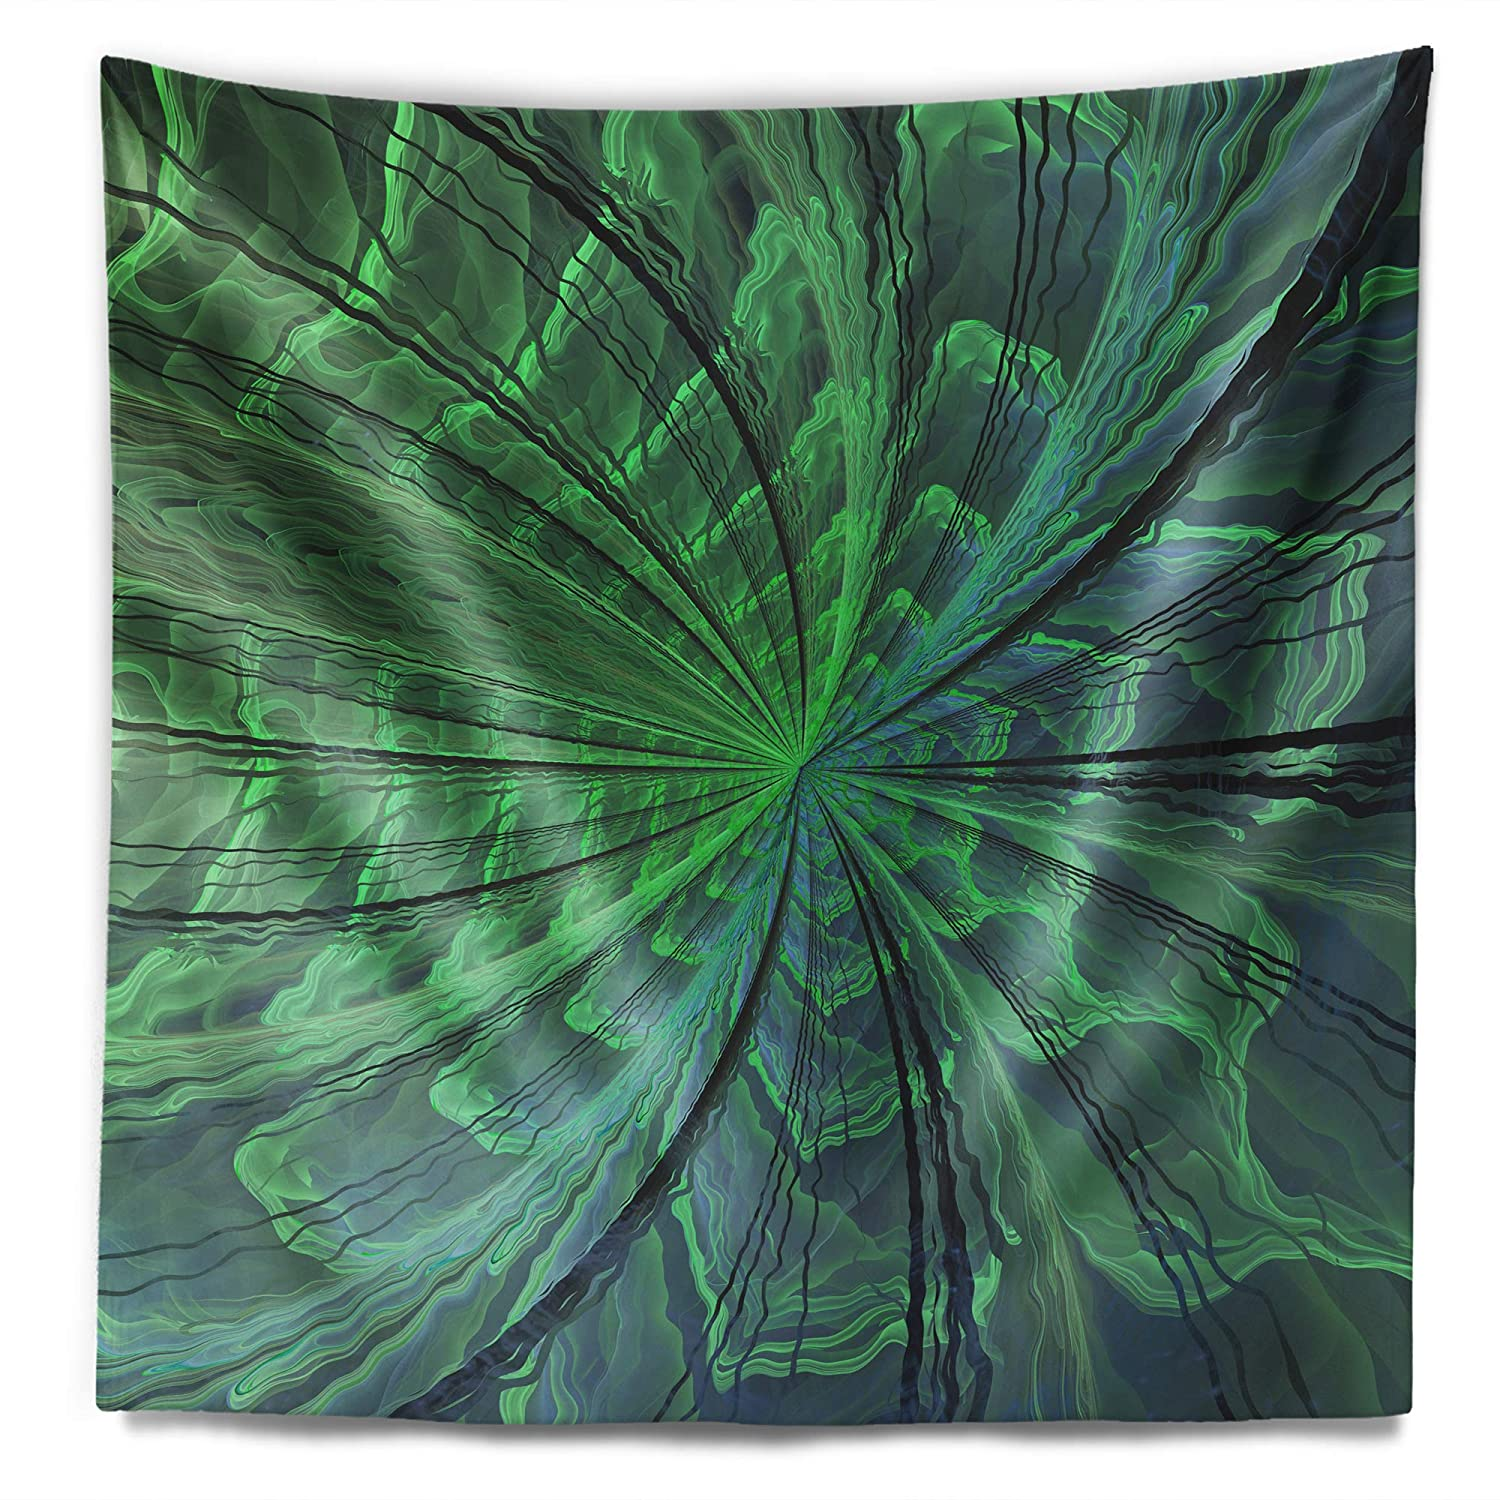 X 60 In Designart Tap11990 50 60 Symmetrical Soft Green Fractal Flower Floral Blanket Décor Art For Home And Office Wall Tapestry Large Created On Lightweight Polyester Fabric 50 In